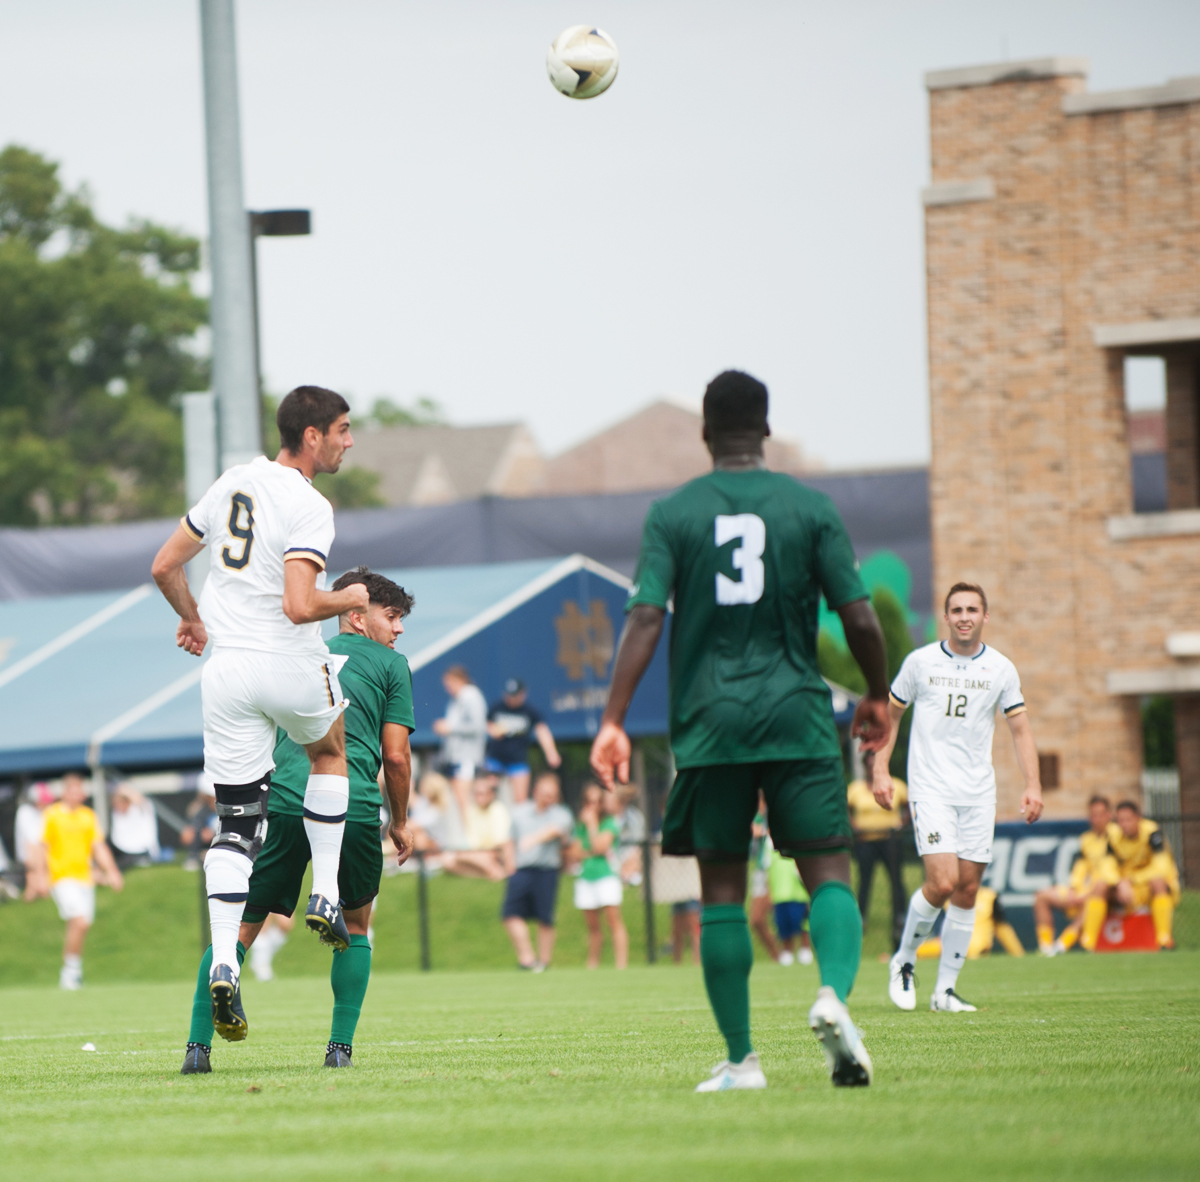 Irish senior forward Jeff Farina heads the ball during Notre Dame's 2-1 win over Cal Poly on Aug. 27 at Alumni Stadium.